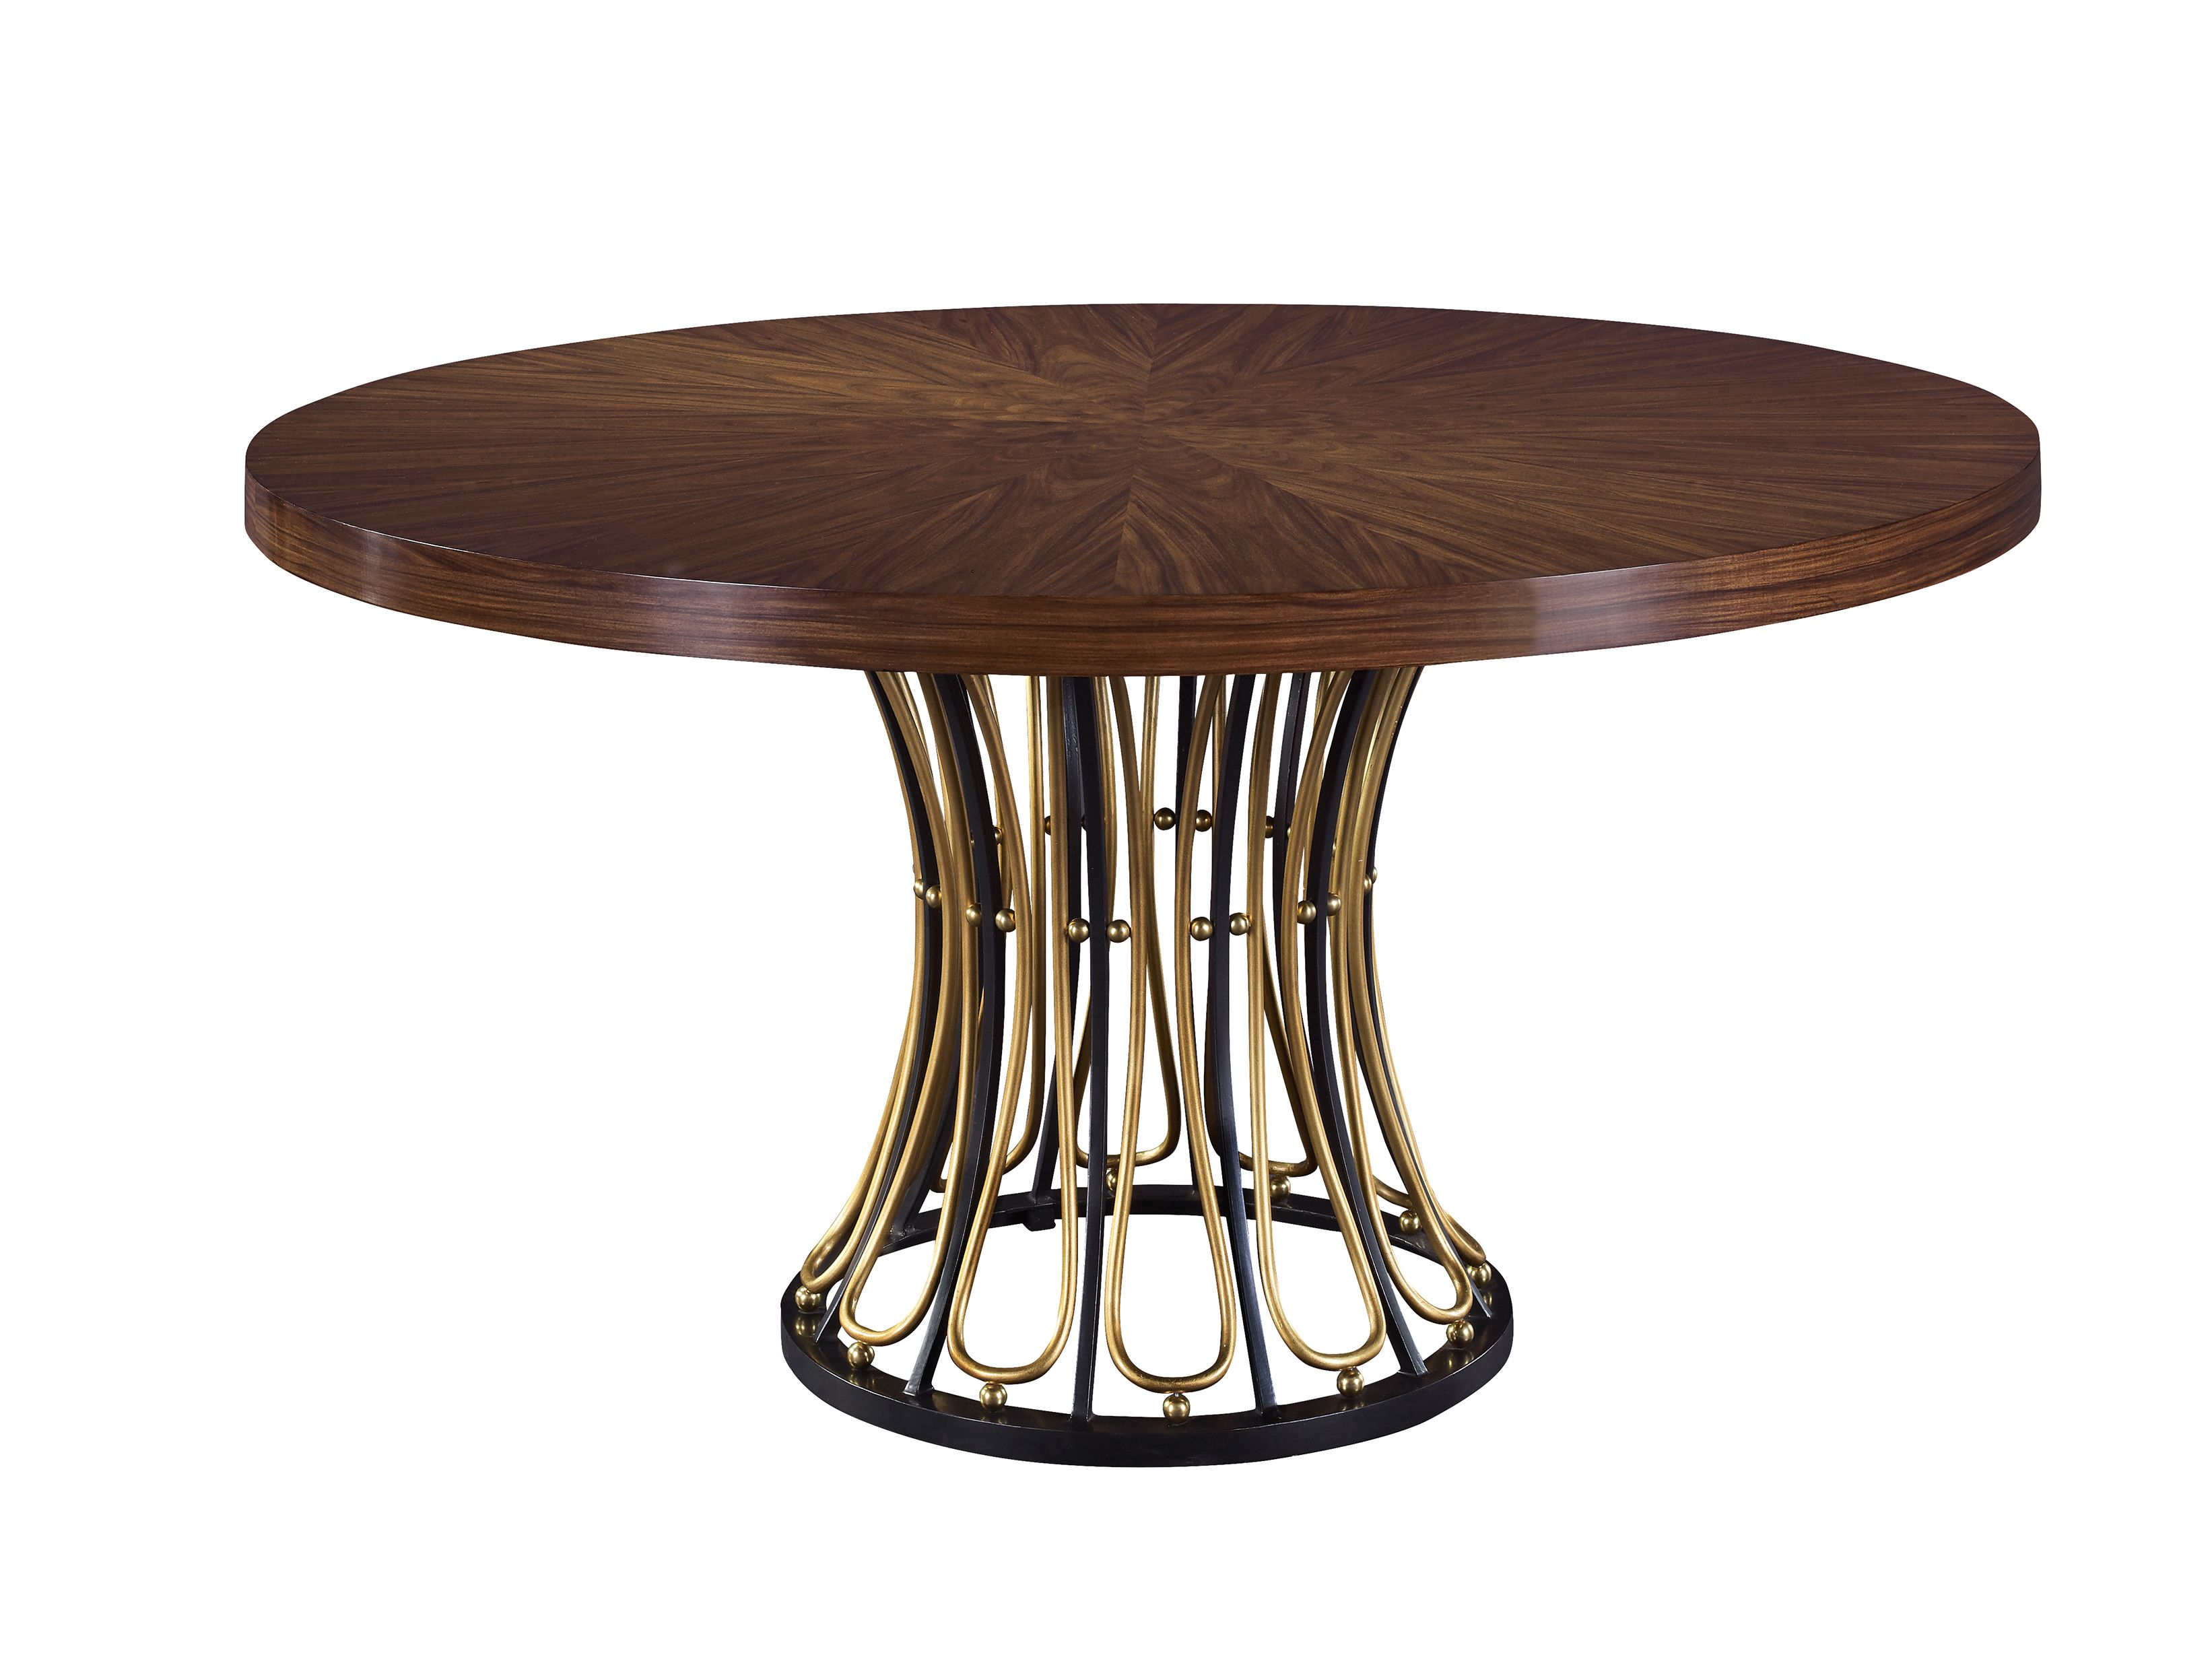 Yves Round Dining Table Top A Classic Wheat Inspired Pedestal Base Of Iron With Gilt Accents And A Rosewood T Dining Table Dining Table Top Henredon Furniture